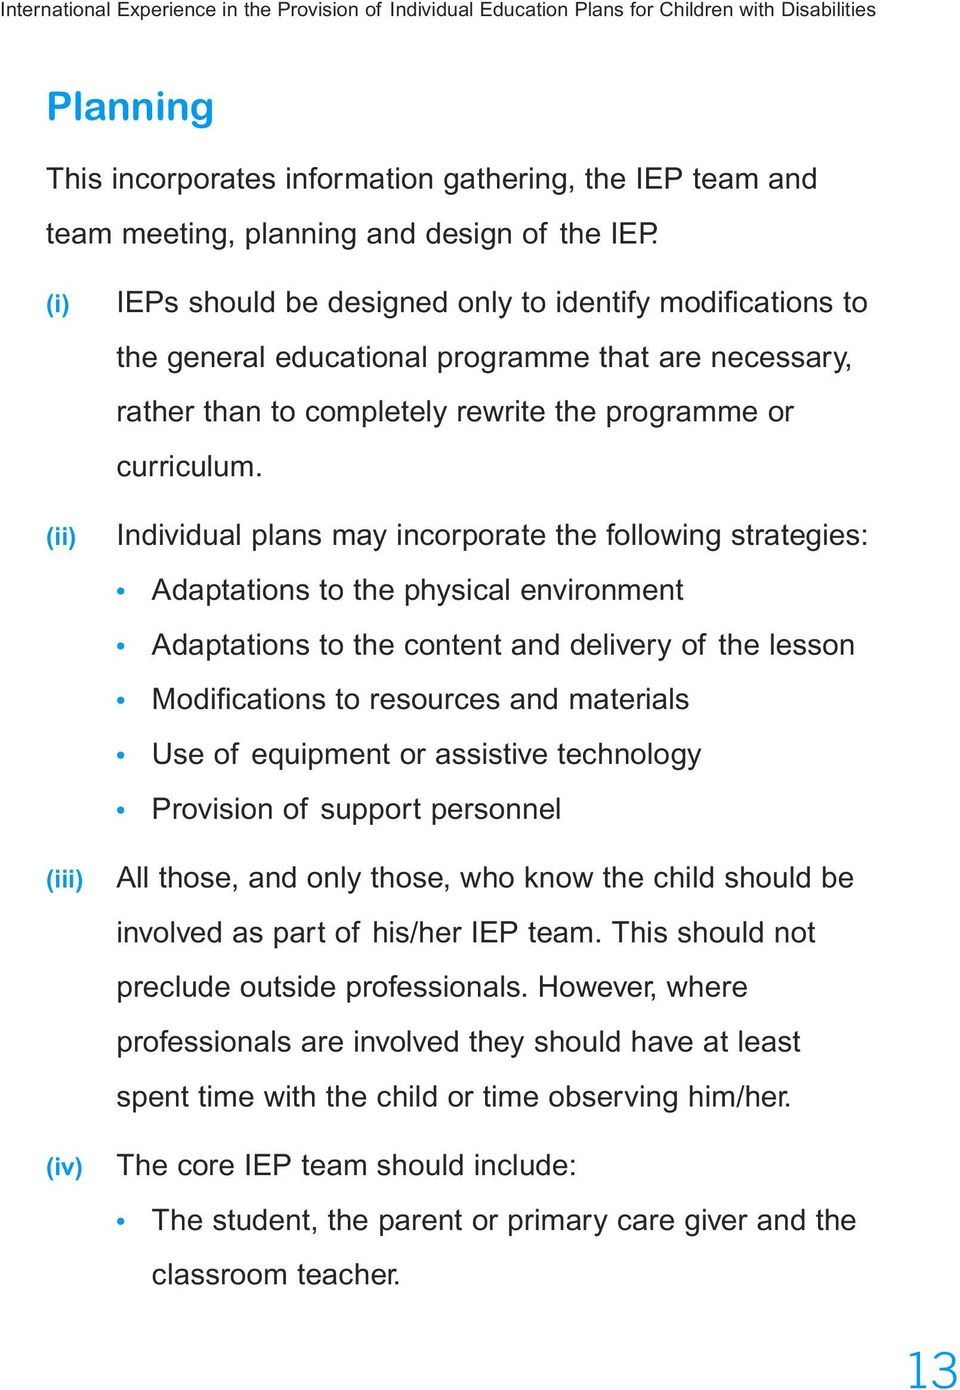 (i) (ii) (iii) (iv) IEPs should be designed only to identify modifications to the general educational programme that are necessary, rather than to completely rewrite the programme or curriculum.